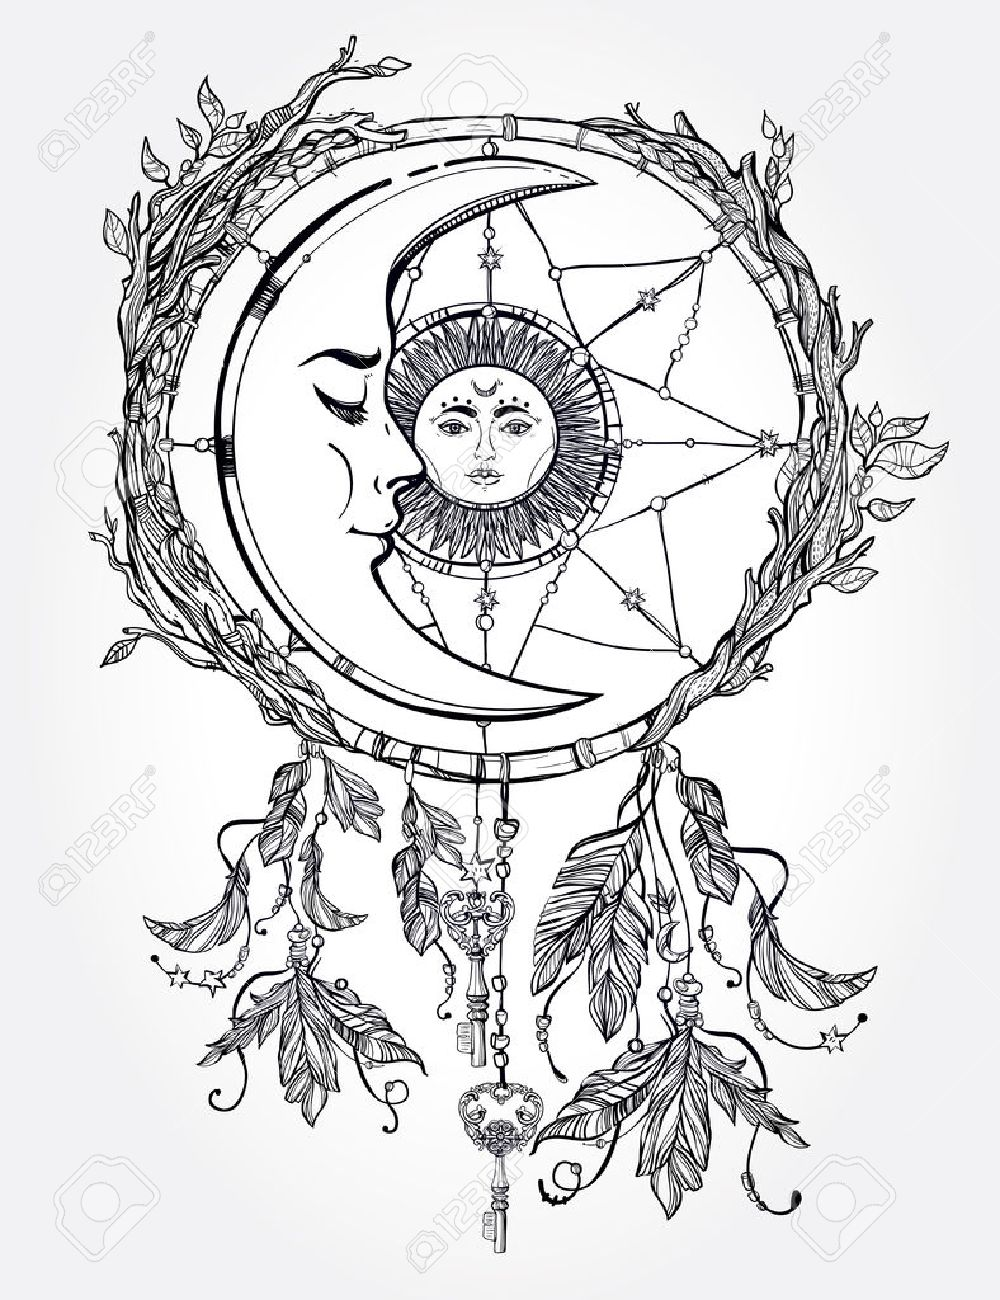 1000x1300 Hand Drawn Romantic Beautiful Drawing Of A Dream Catcher Adorned